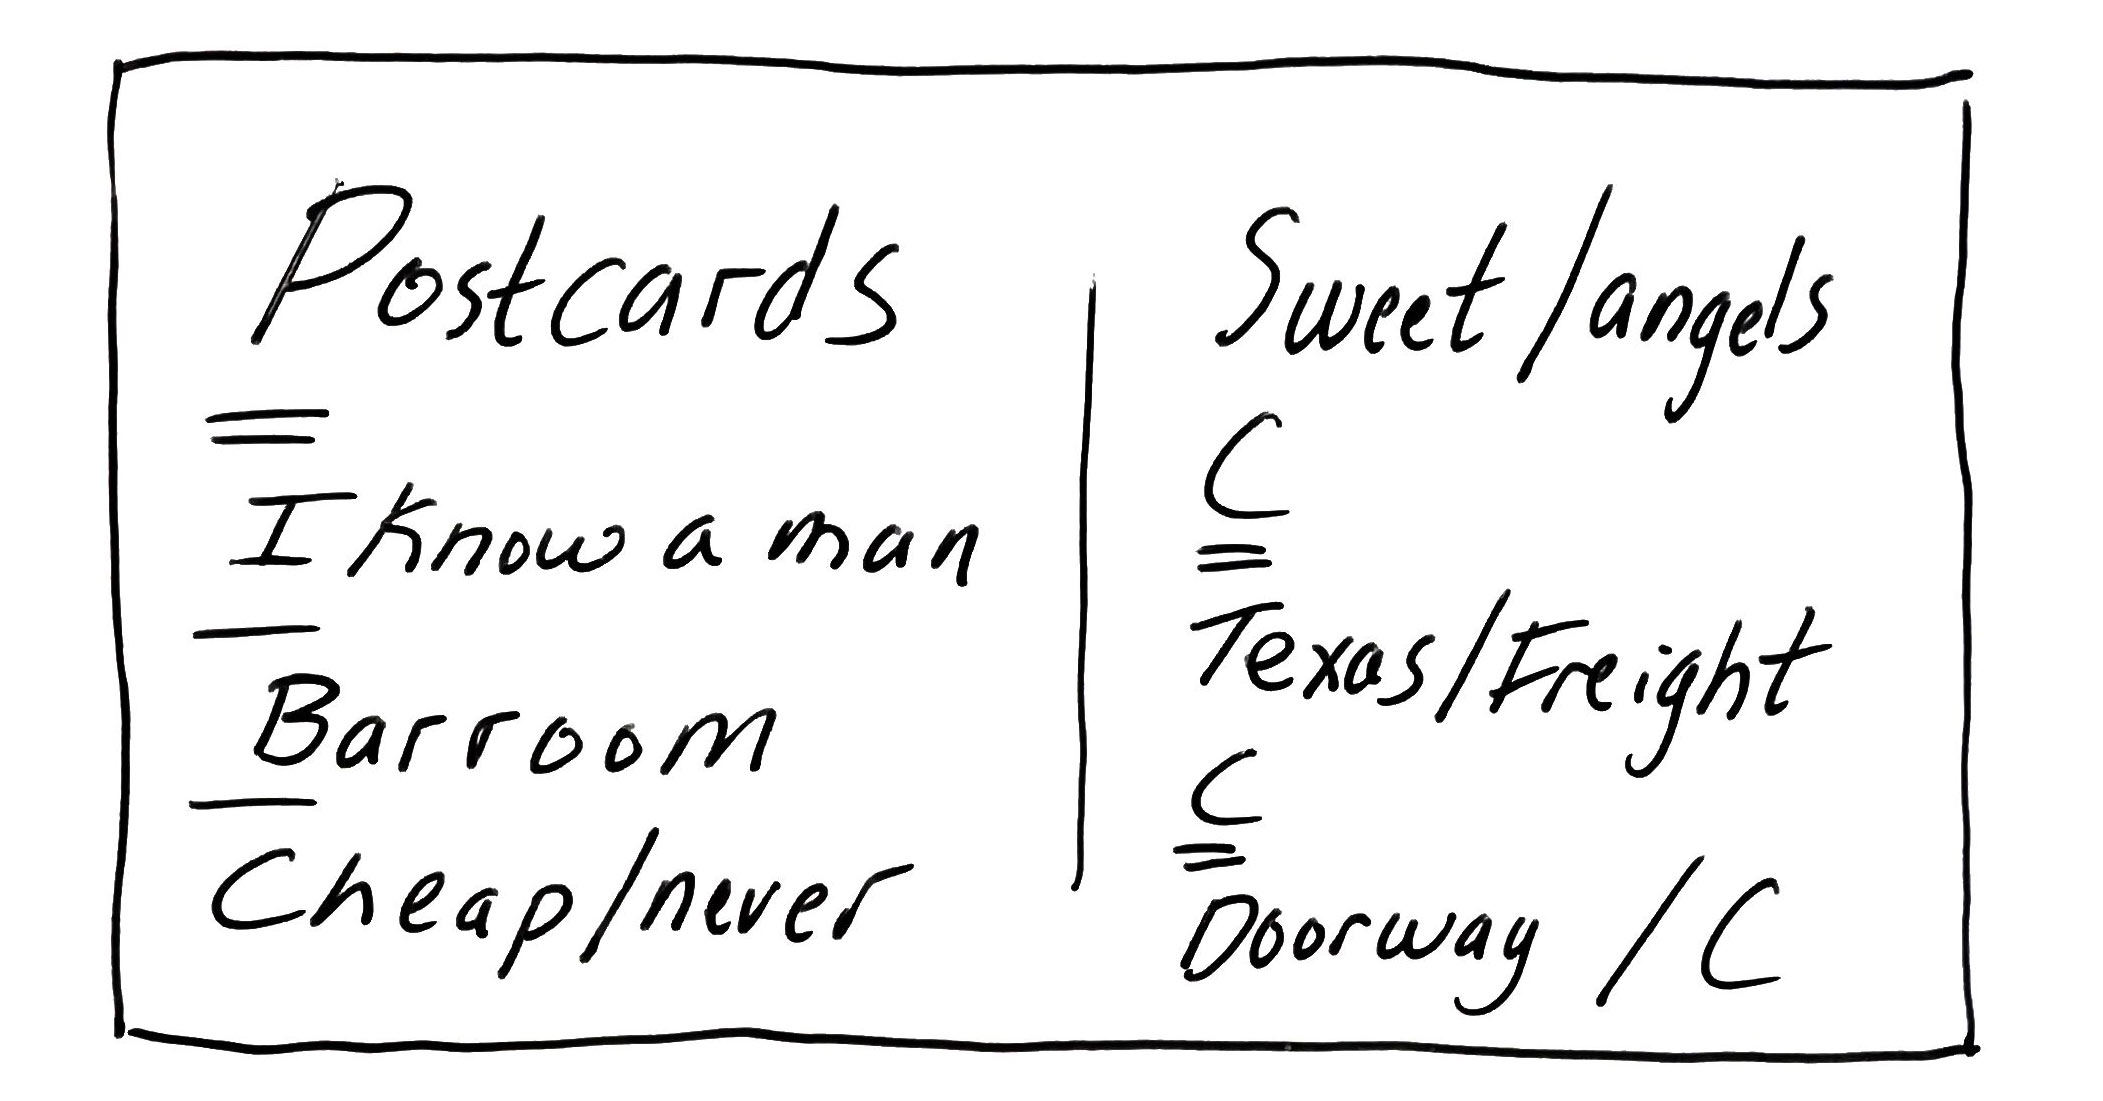 Cheat Sheet for Postcards from Hell